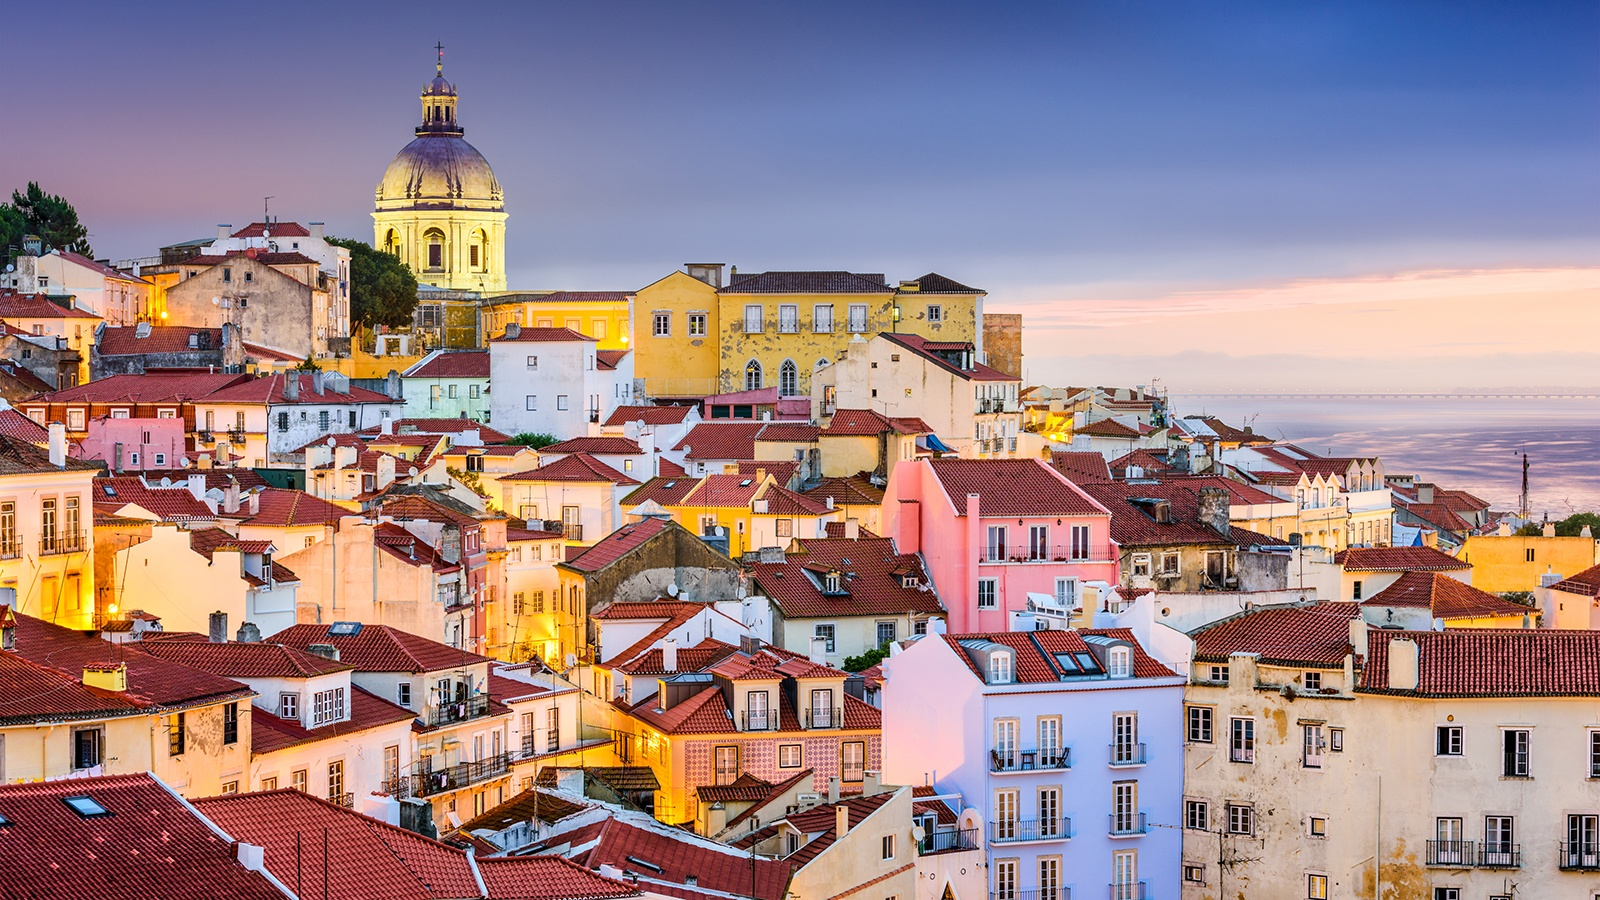 lisboa, , day tour in lisbon, wine tour in lisbon, guided tour is lisbon, top things to do in lisbon, wine tasting in lisbon, lisbon's main attractions